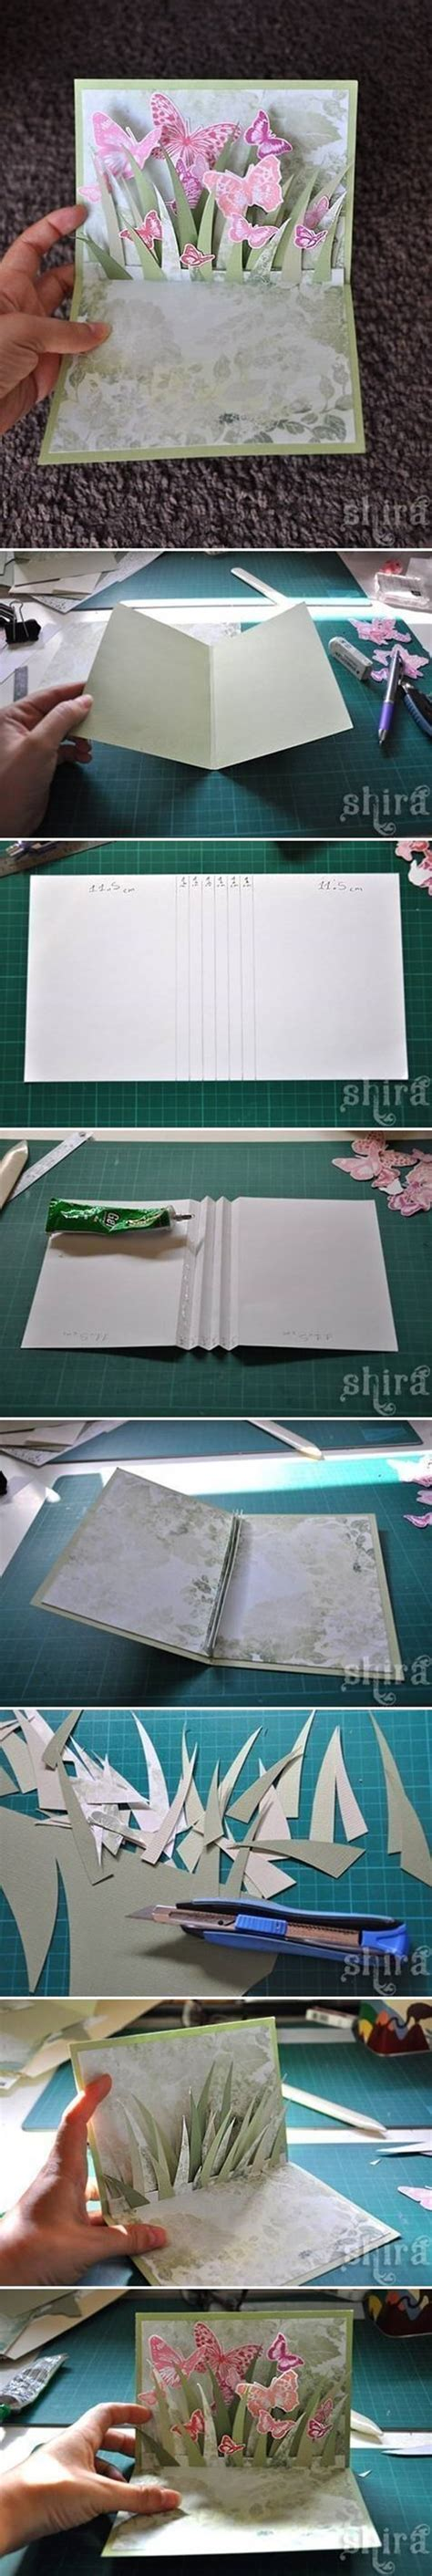 how to make a 3d greeting card how to made 3d greeting card step by step